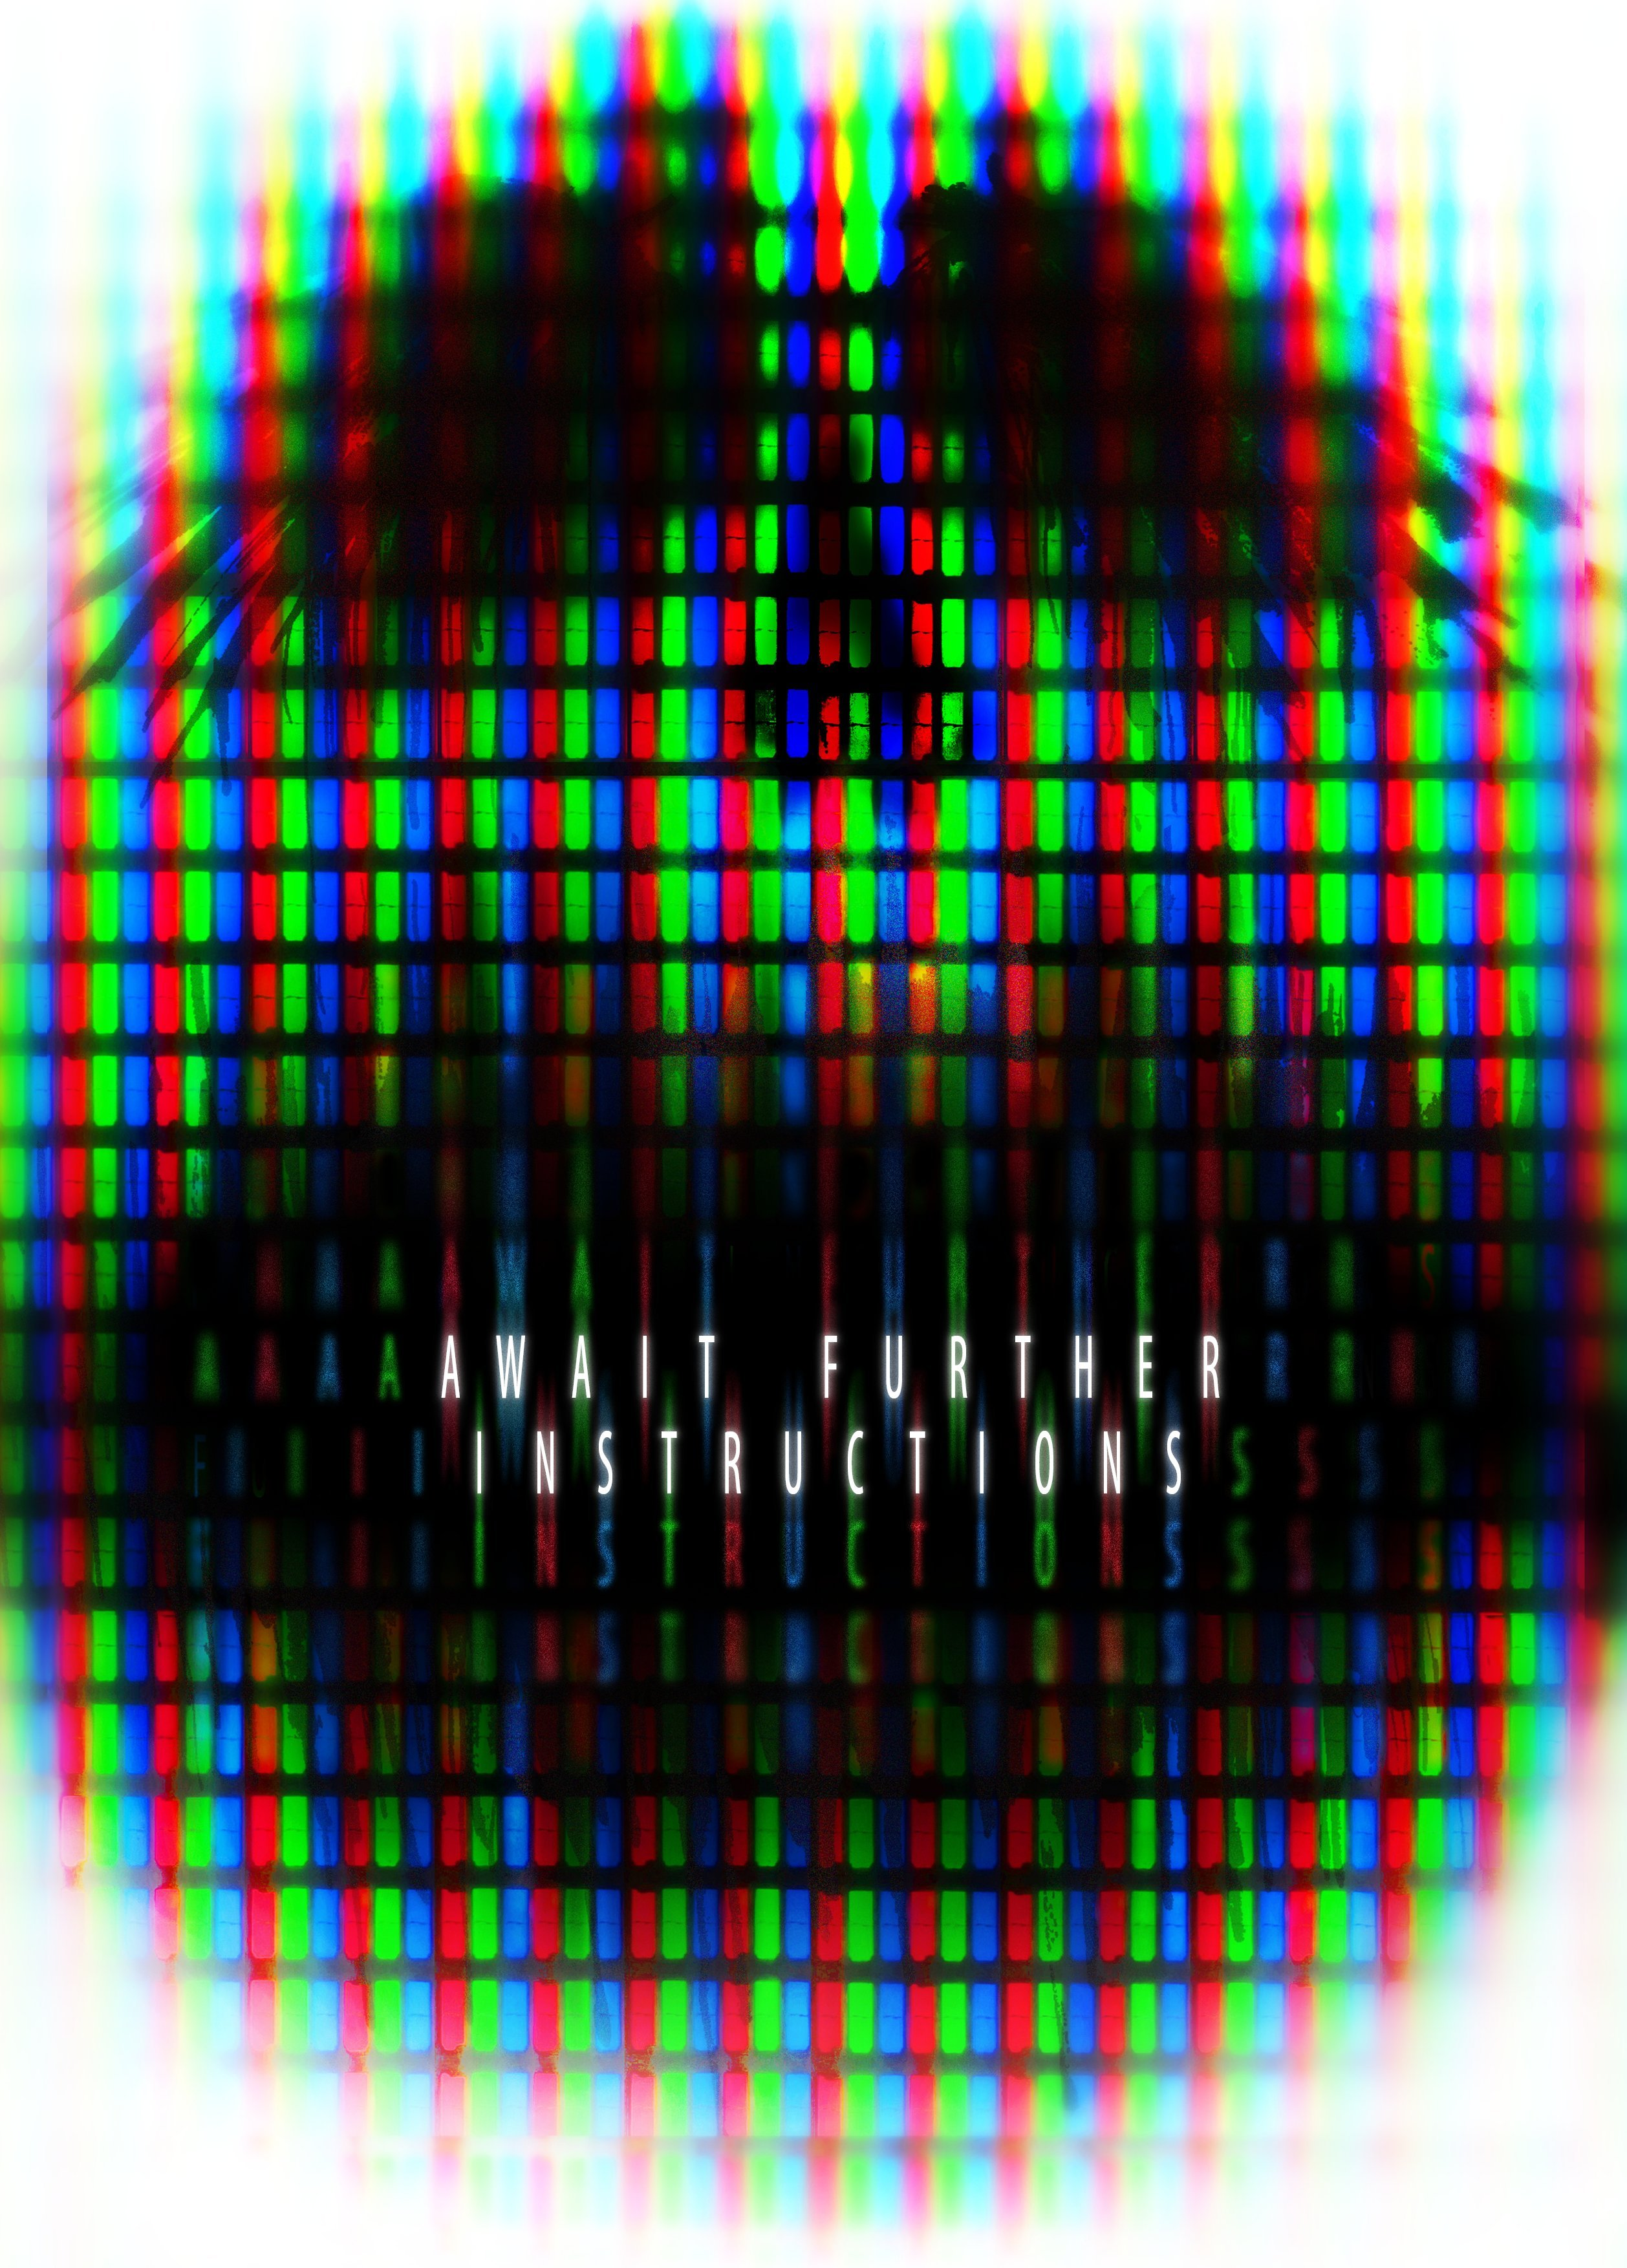 'Await Further Instructions' wins Audience Award at Cinepocalypse Film Festival 2018